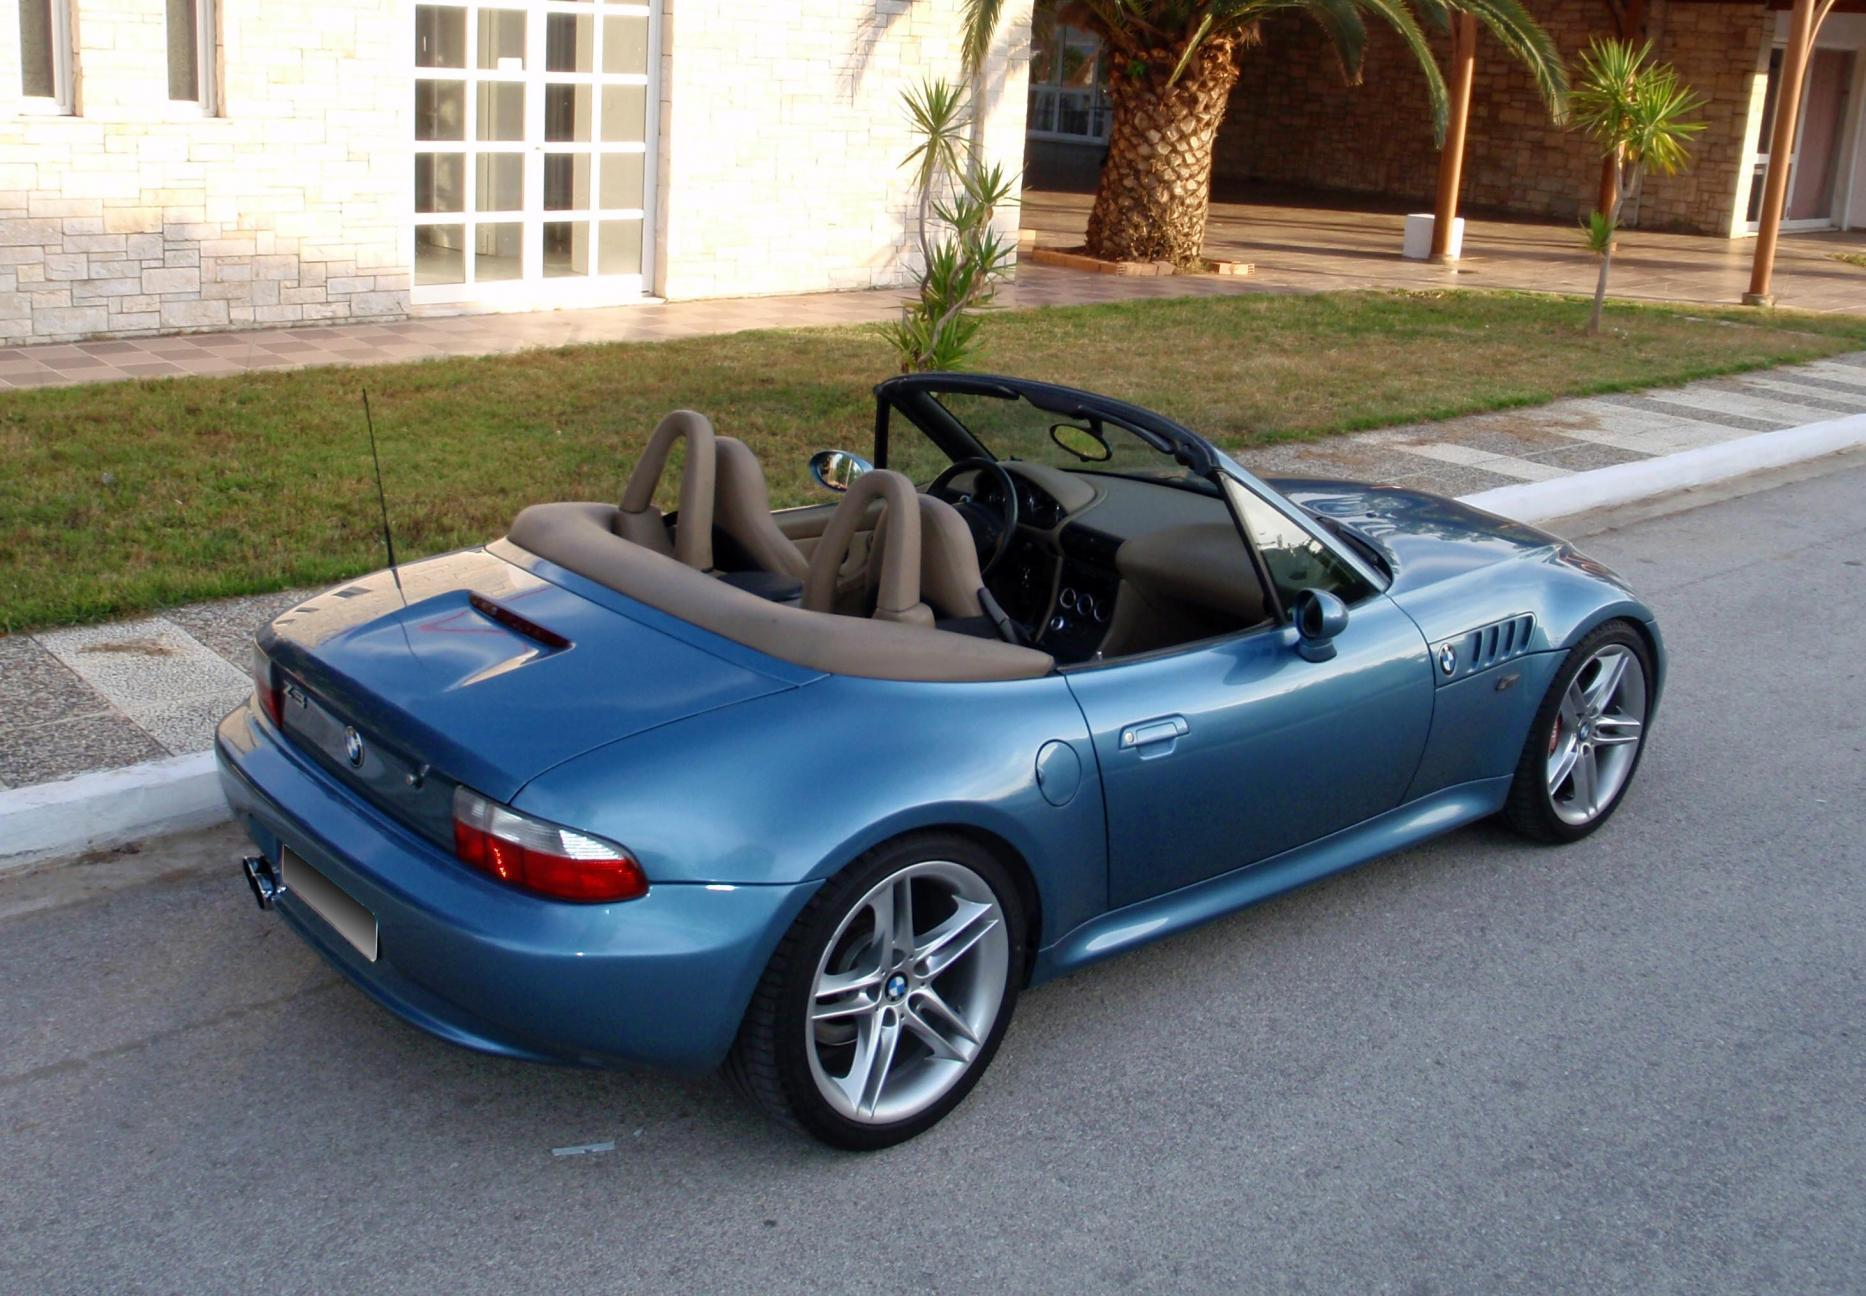 Vanvic S 1999 Bmw Z3 In Athens